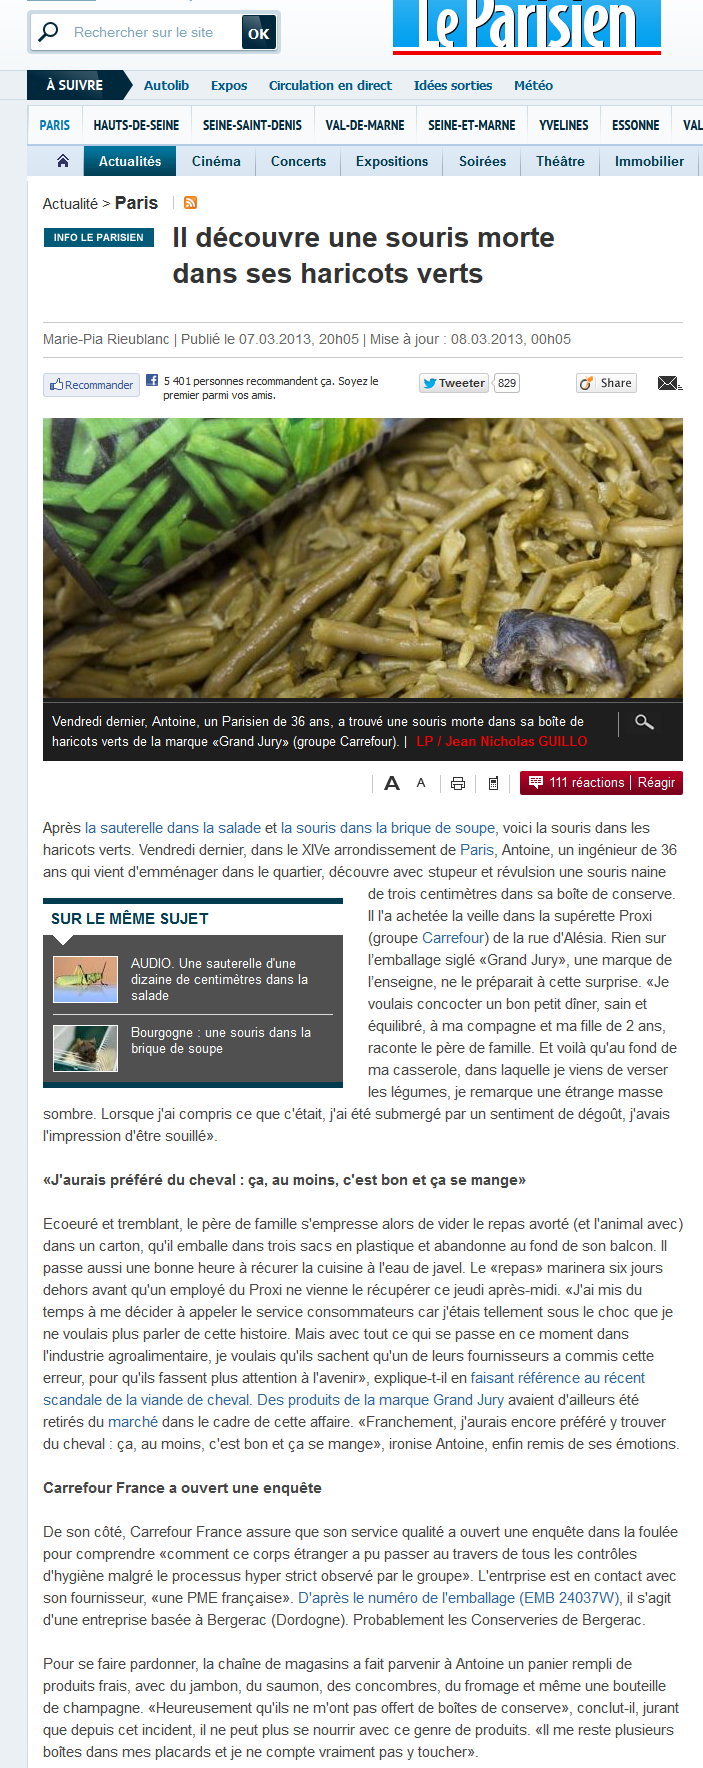 Description : http://revue-du-jeudi.blml.fr/wp-content/uploads/2013/03/cbabecfj.png